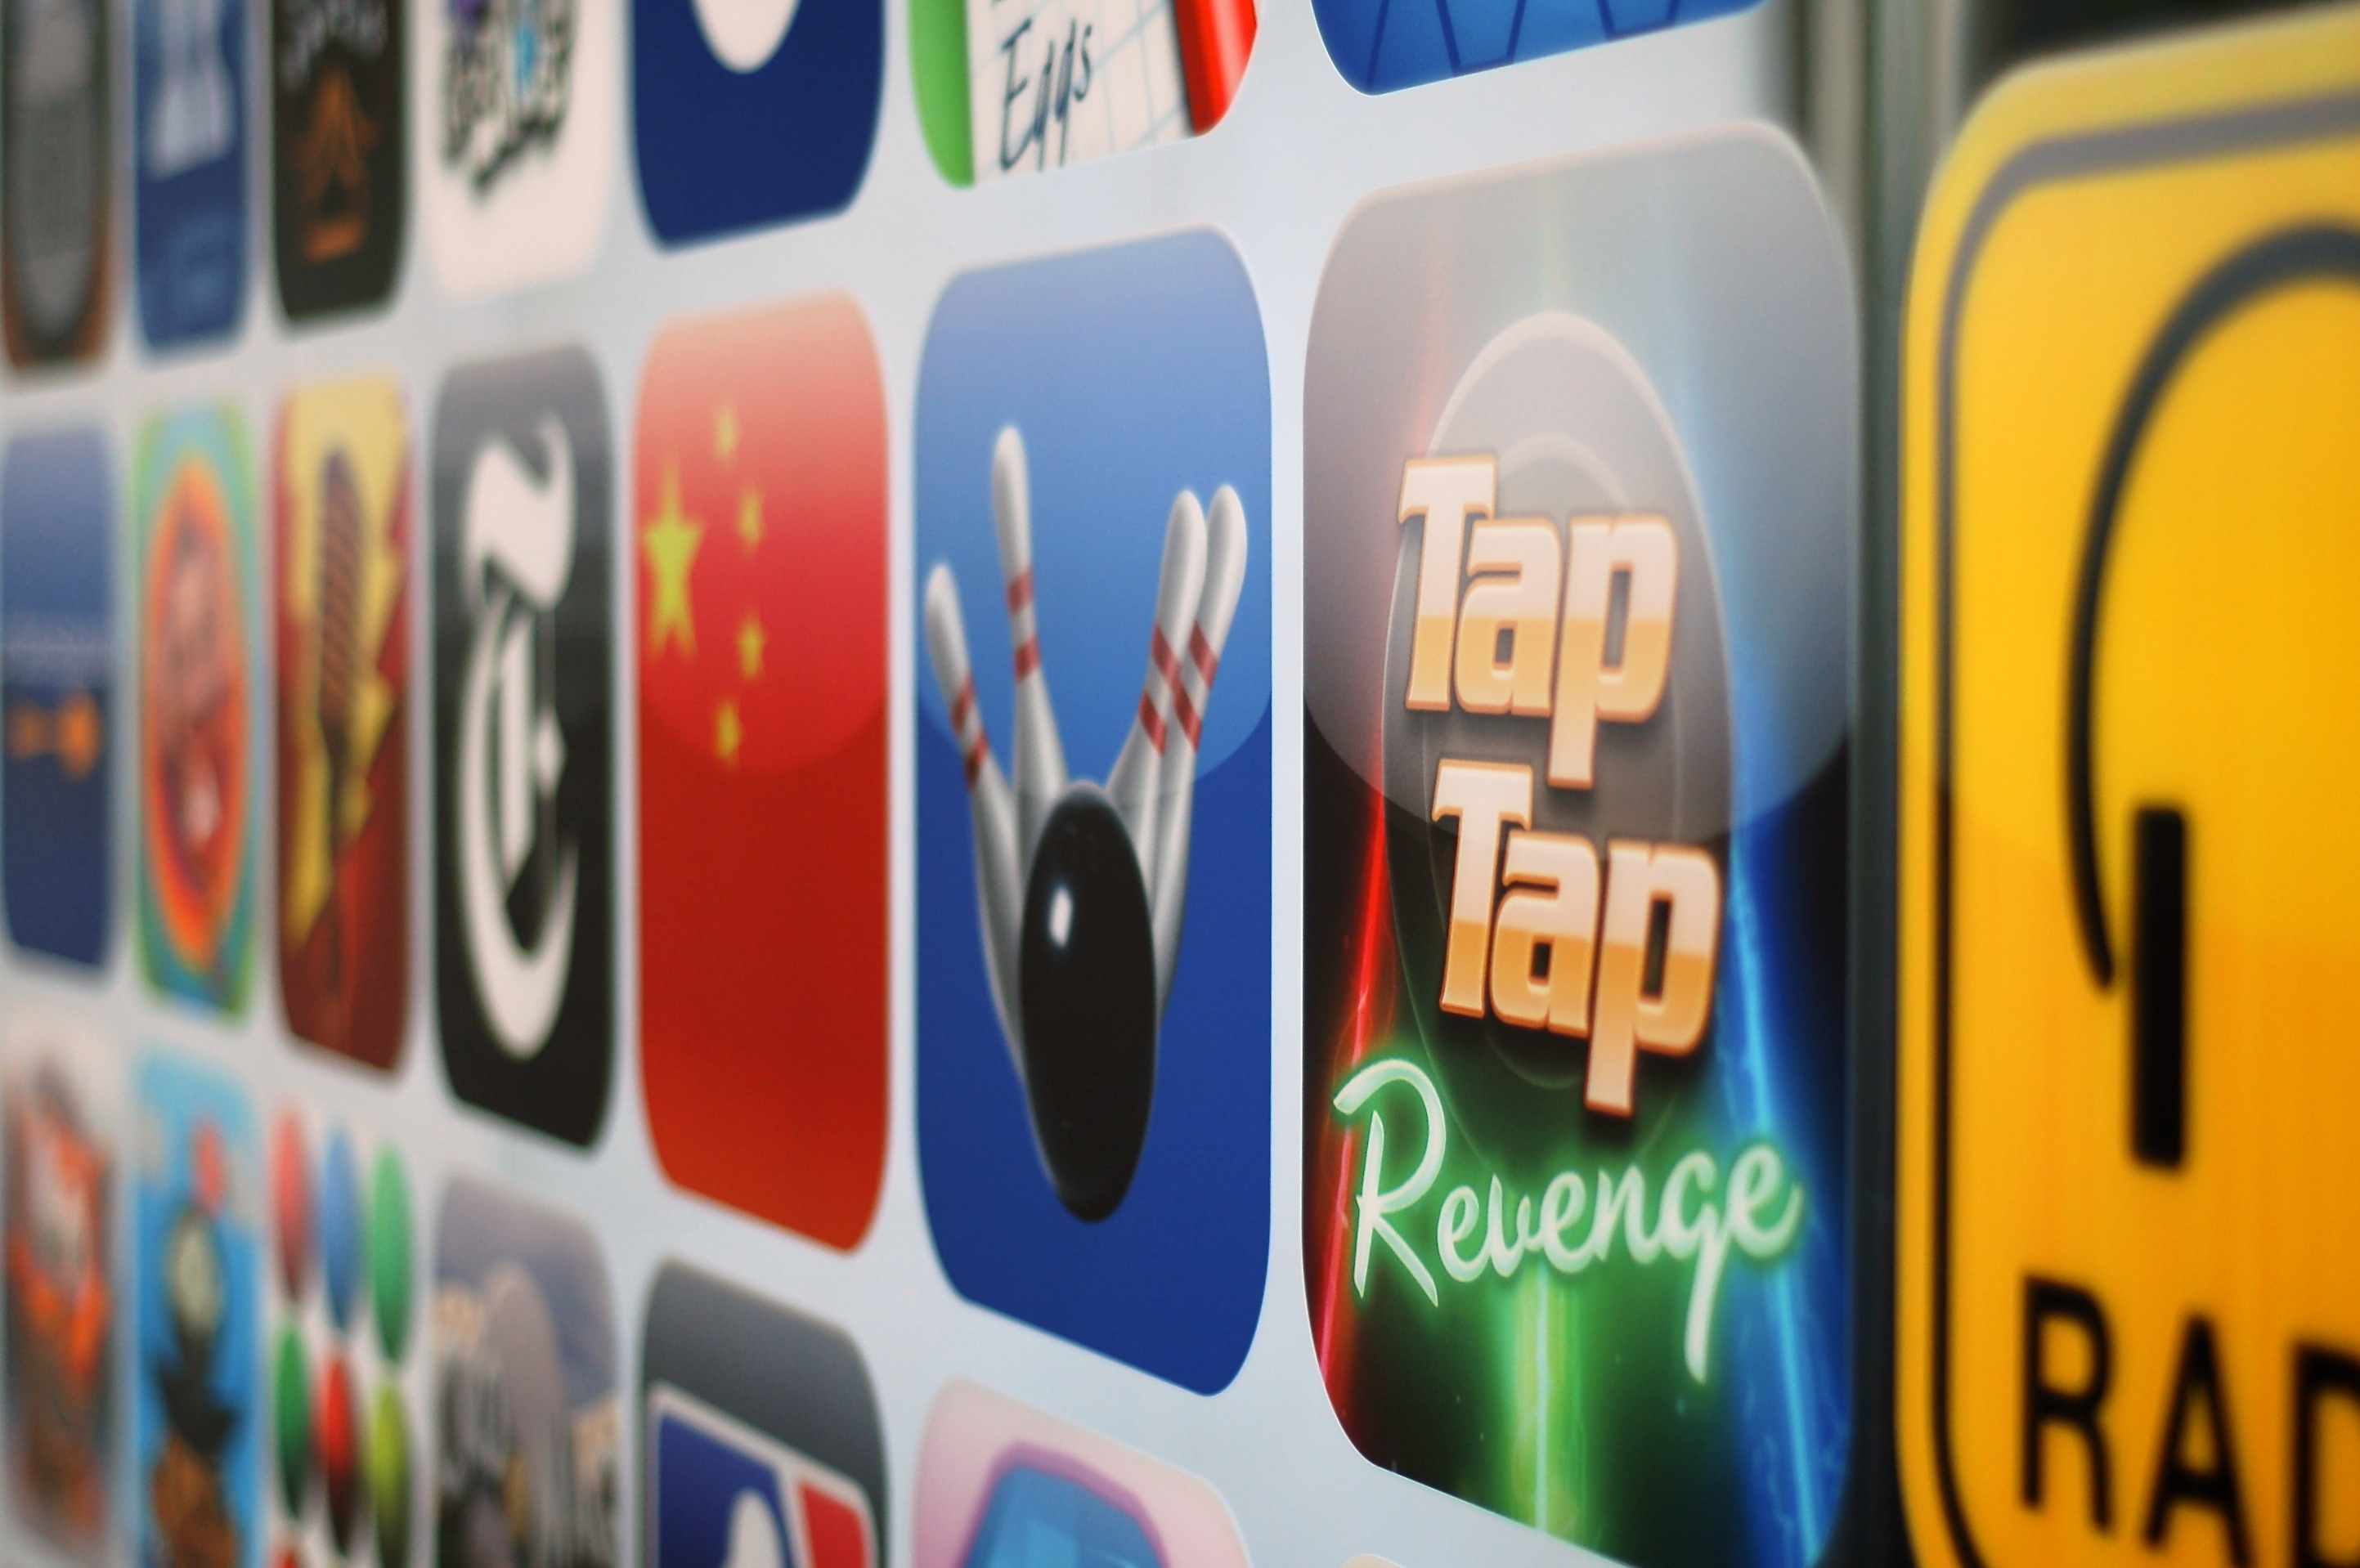 Apple's strict app store rules helped create the freemium model by outlawing free trial periods.